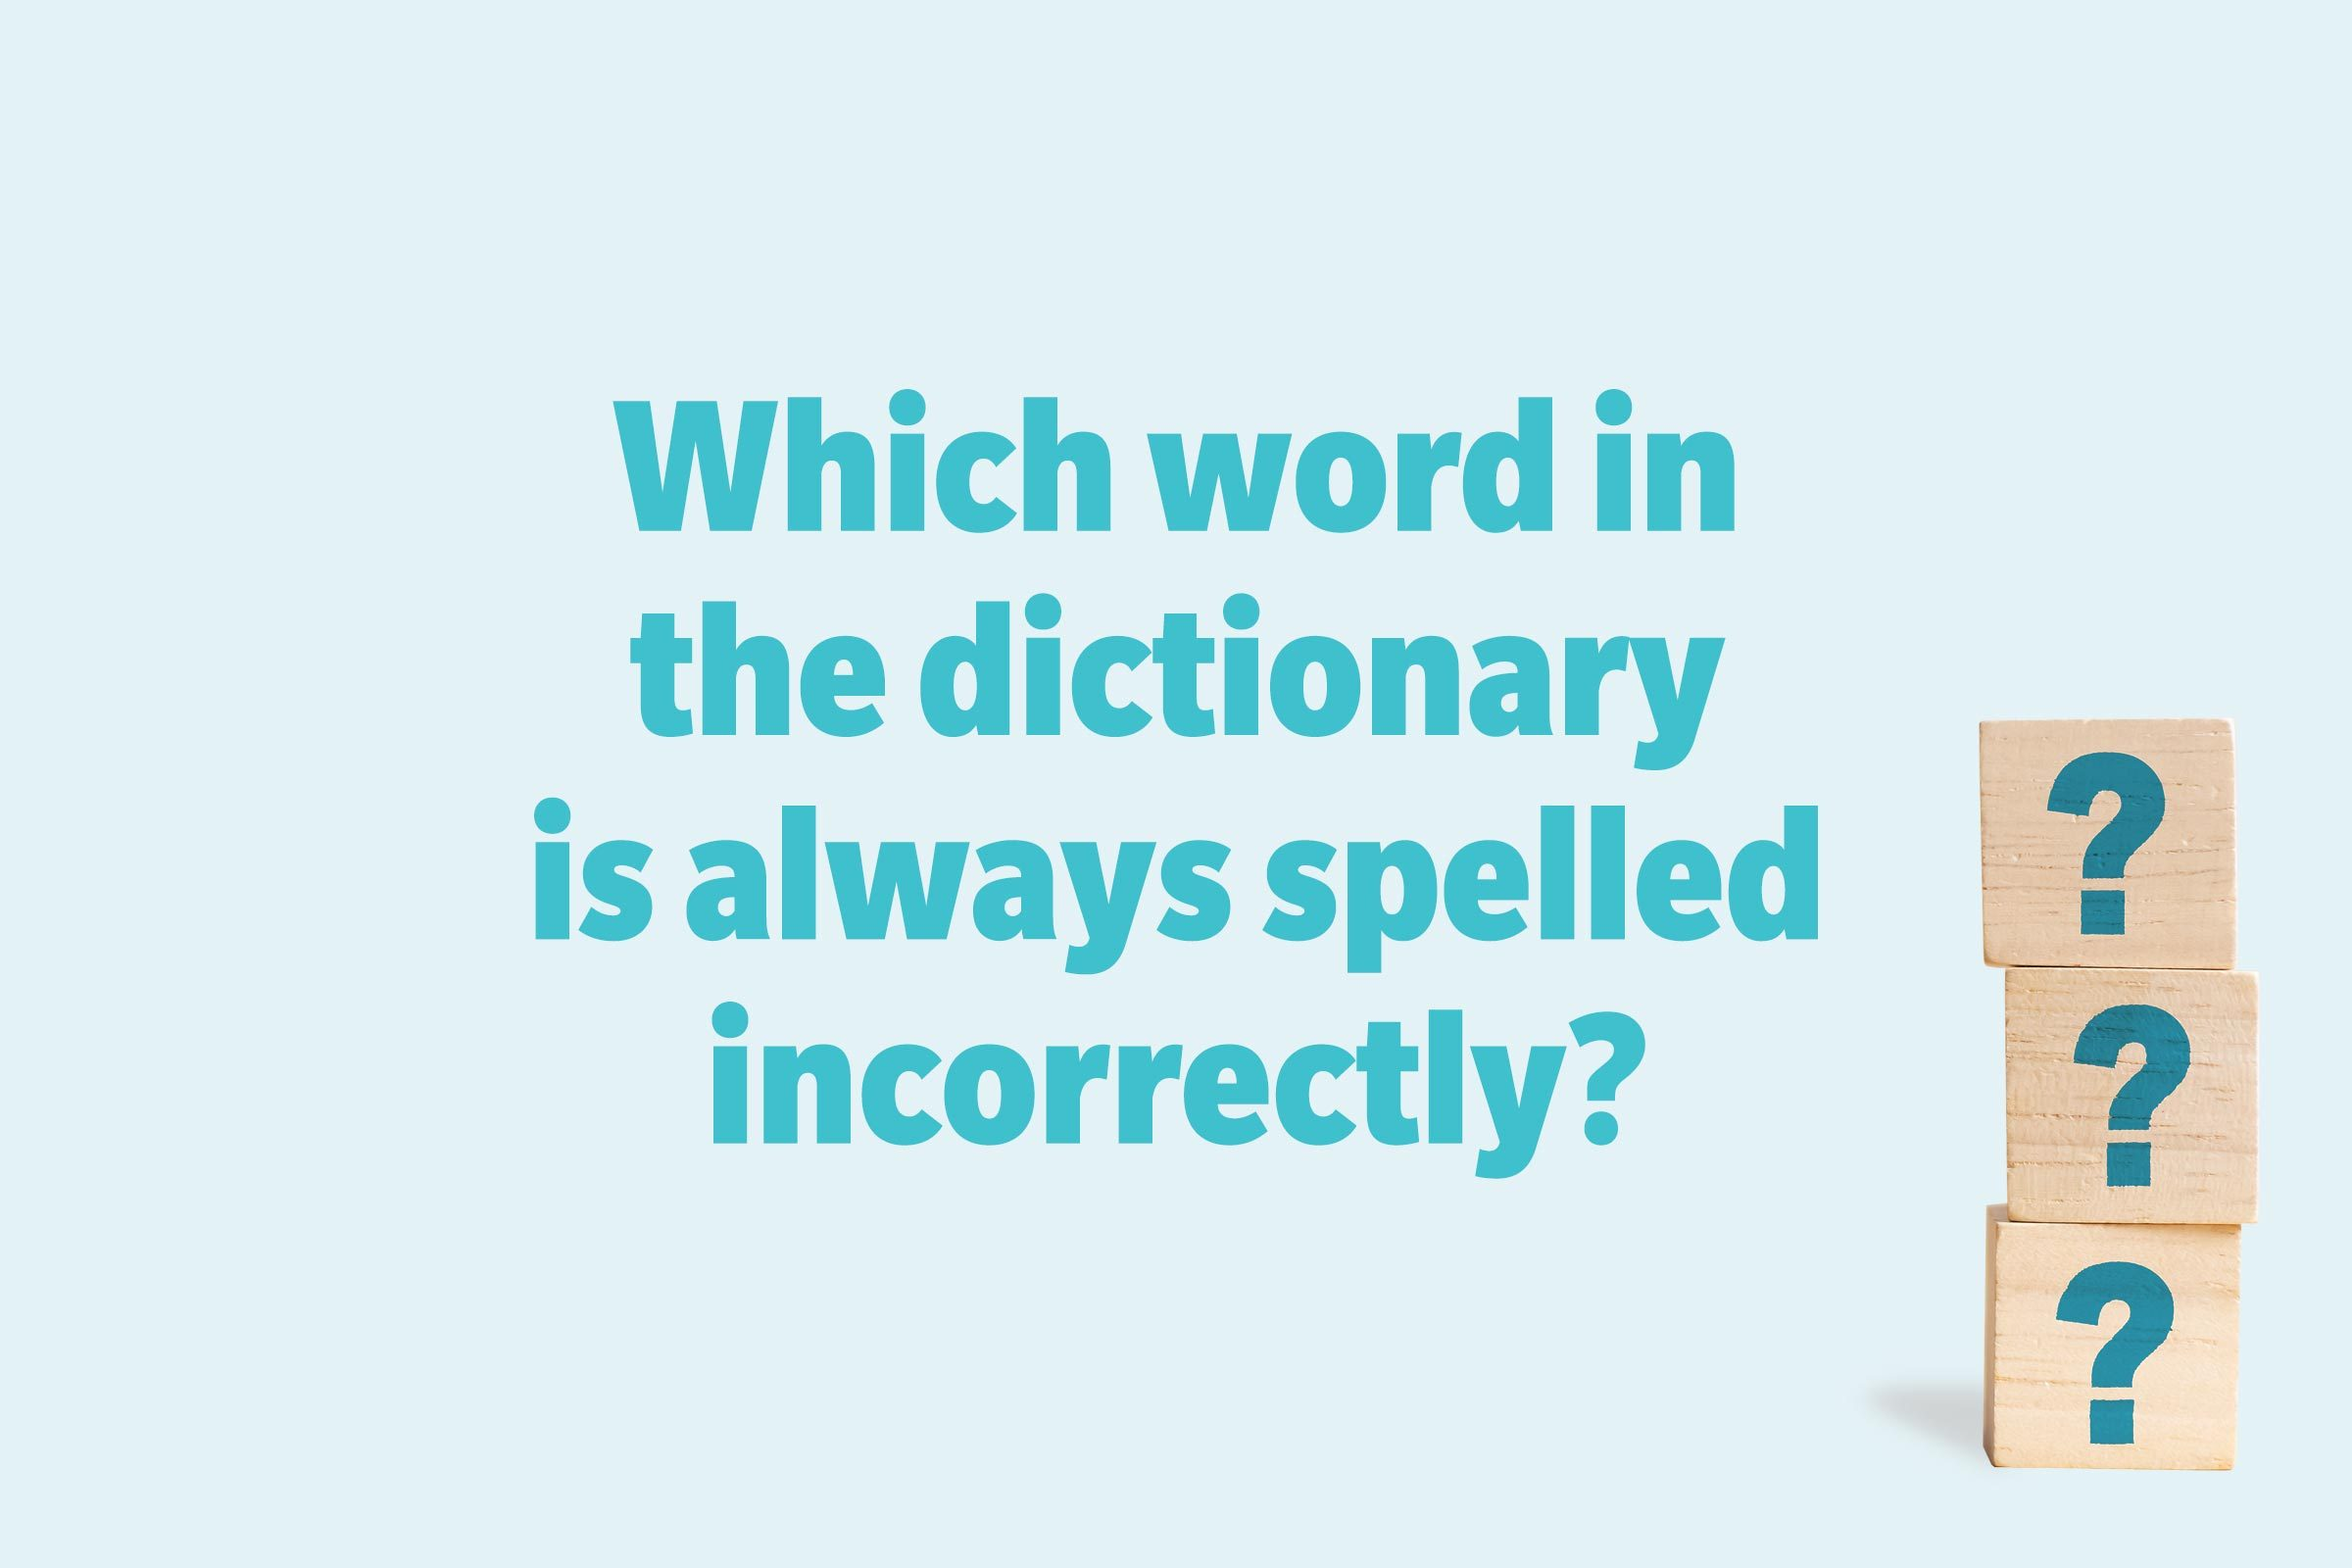 Which word in the dictionary is always spelled incorrectly?